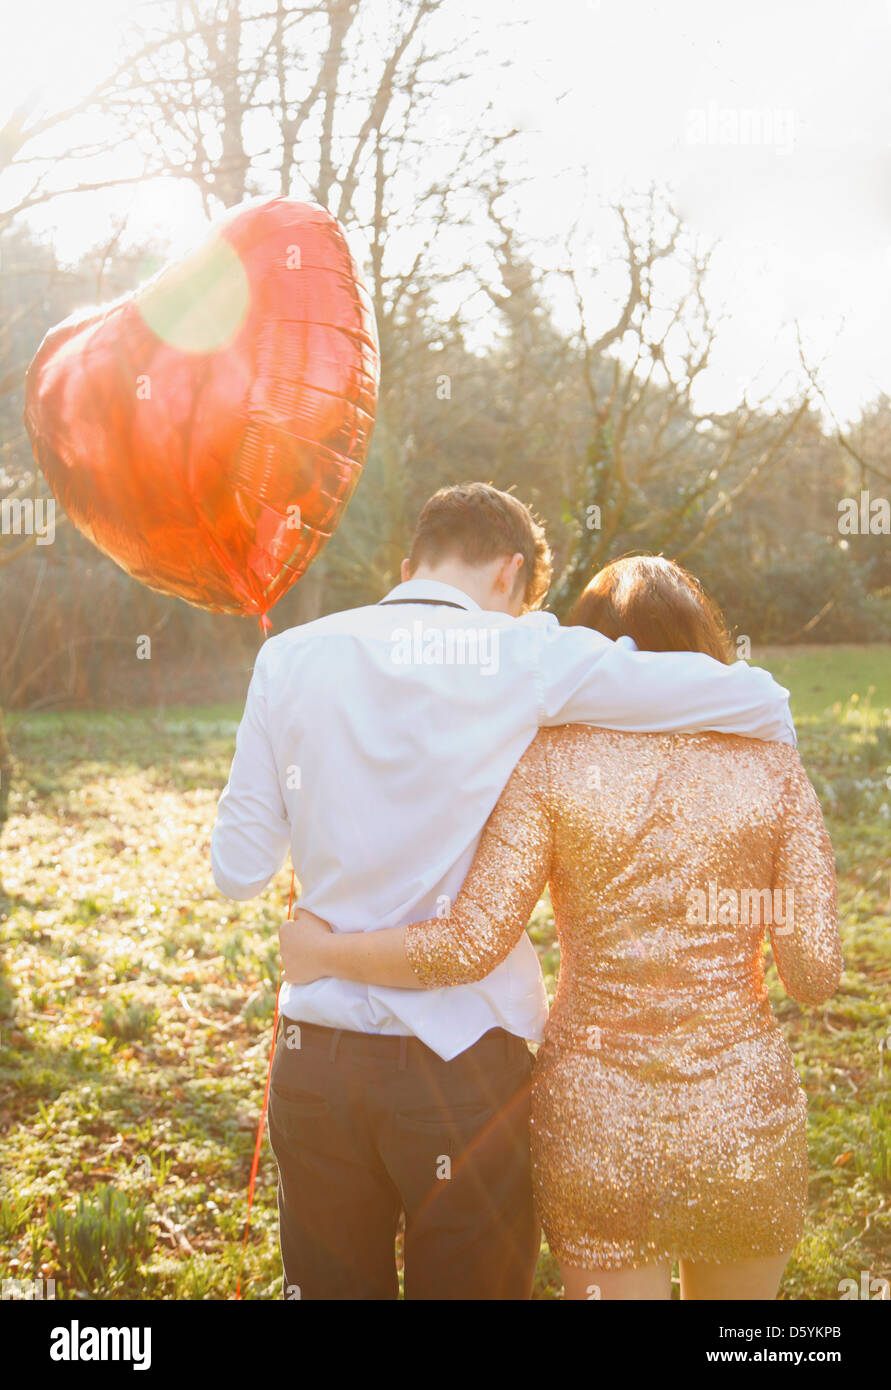 Couple in Park Holding Heart Shaped Balloon, Back View Stock Photo